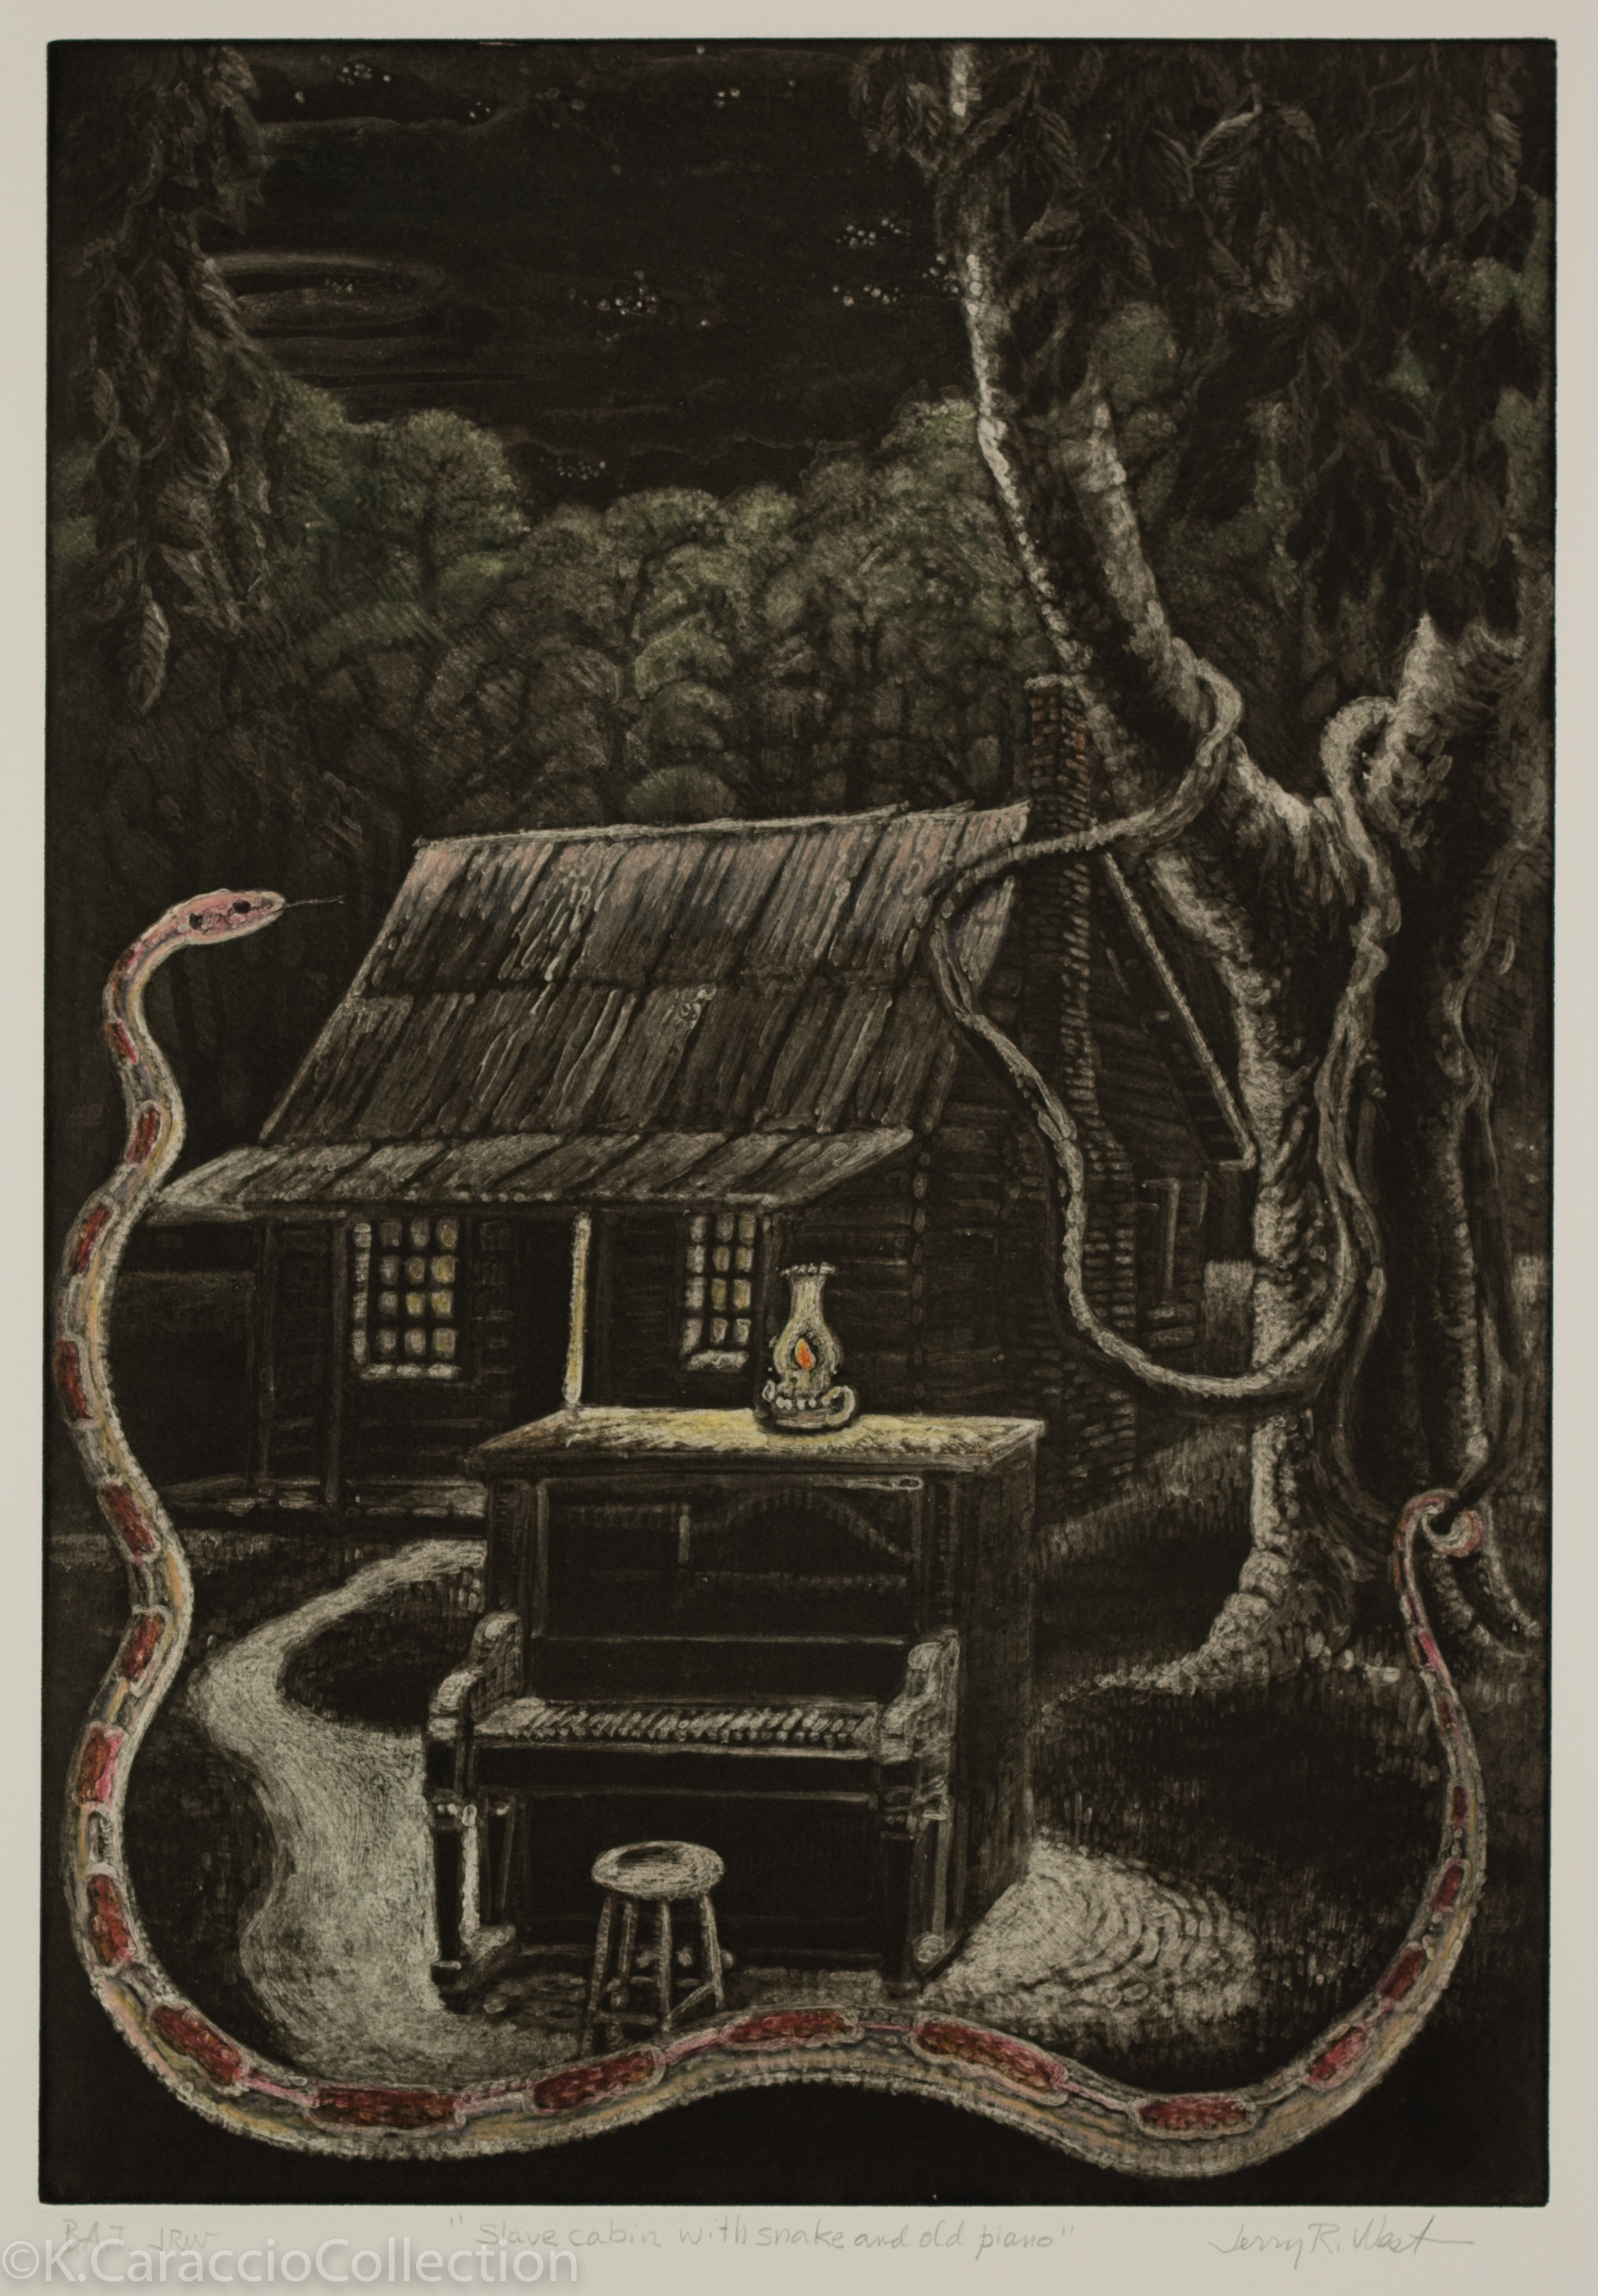 Slave Cabin with Snake and Old Piano, 1999